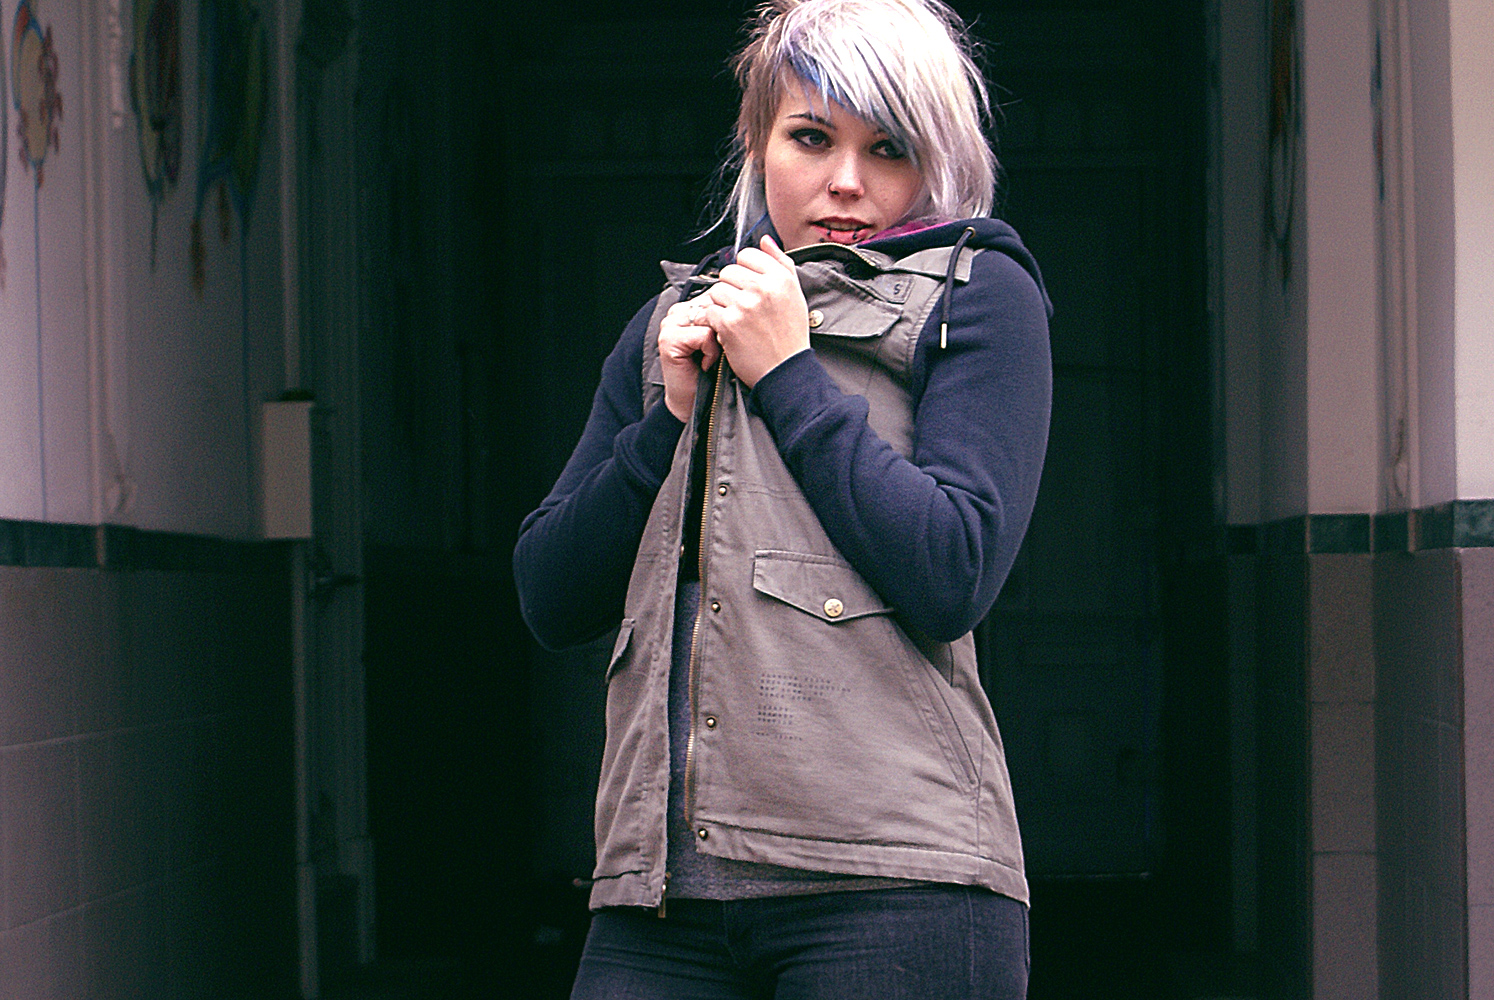 glamour kills, jenna surplus jacket, military jacket, übergangsjacke, leo, pink, unif, braille crop top, jeans, skinny jeans, h&m, moto jeans, grey hair, graue haare, weiße haare, fashion, altfashion, alternative, ootd, mode, alternativ, punk, edgy, dr martens, docs